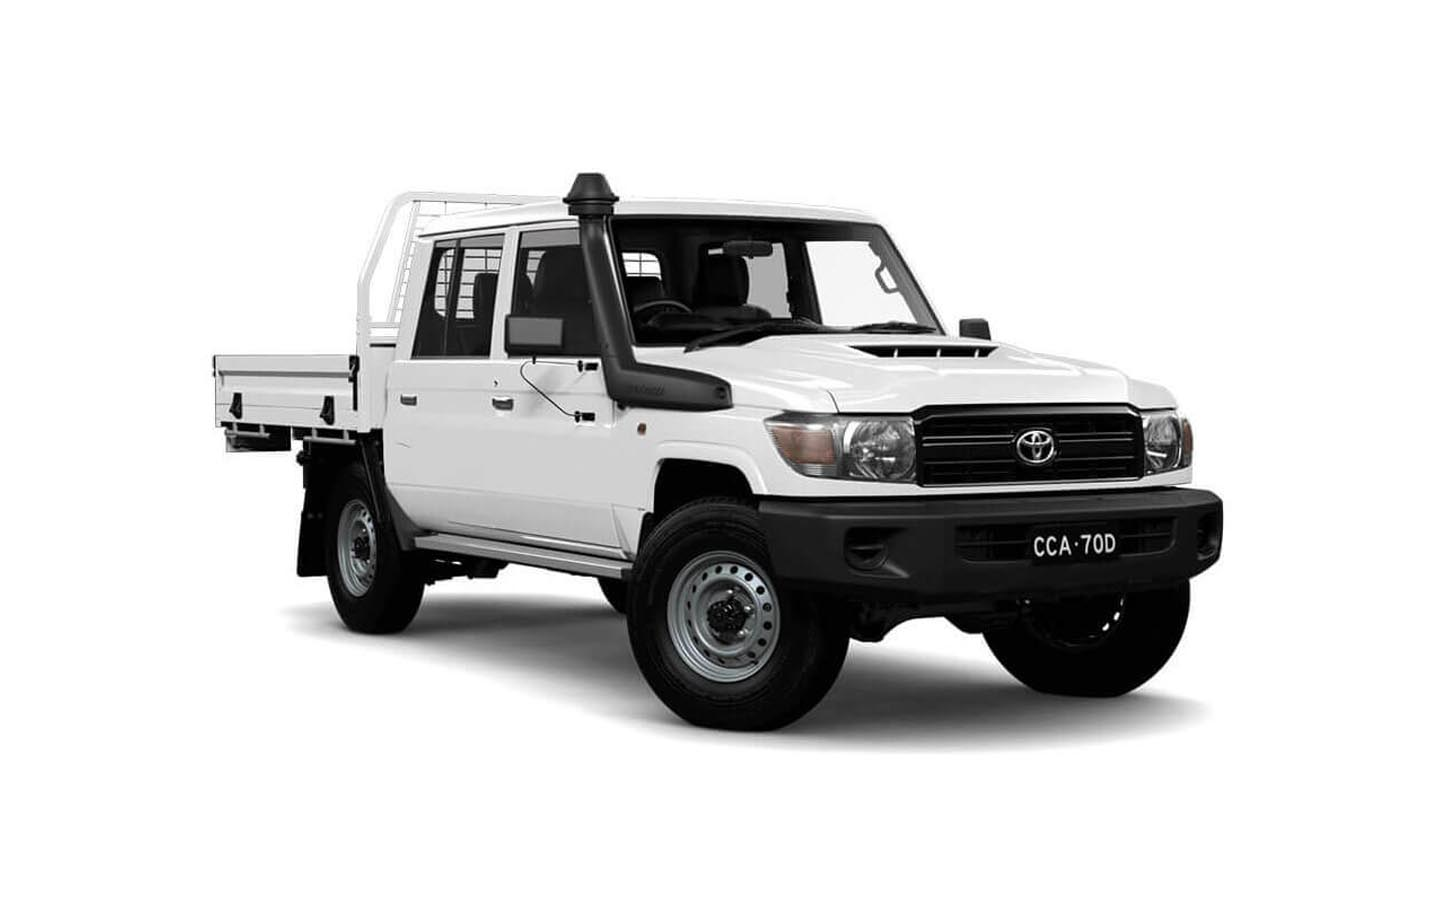 LandCruiser70-Deisgn-06-DOUBLE-CAB CAB-CHASSIS